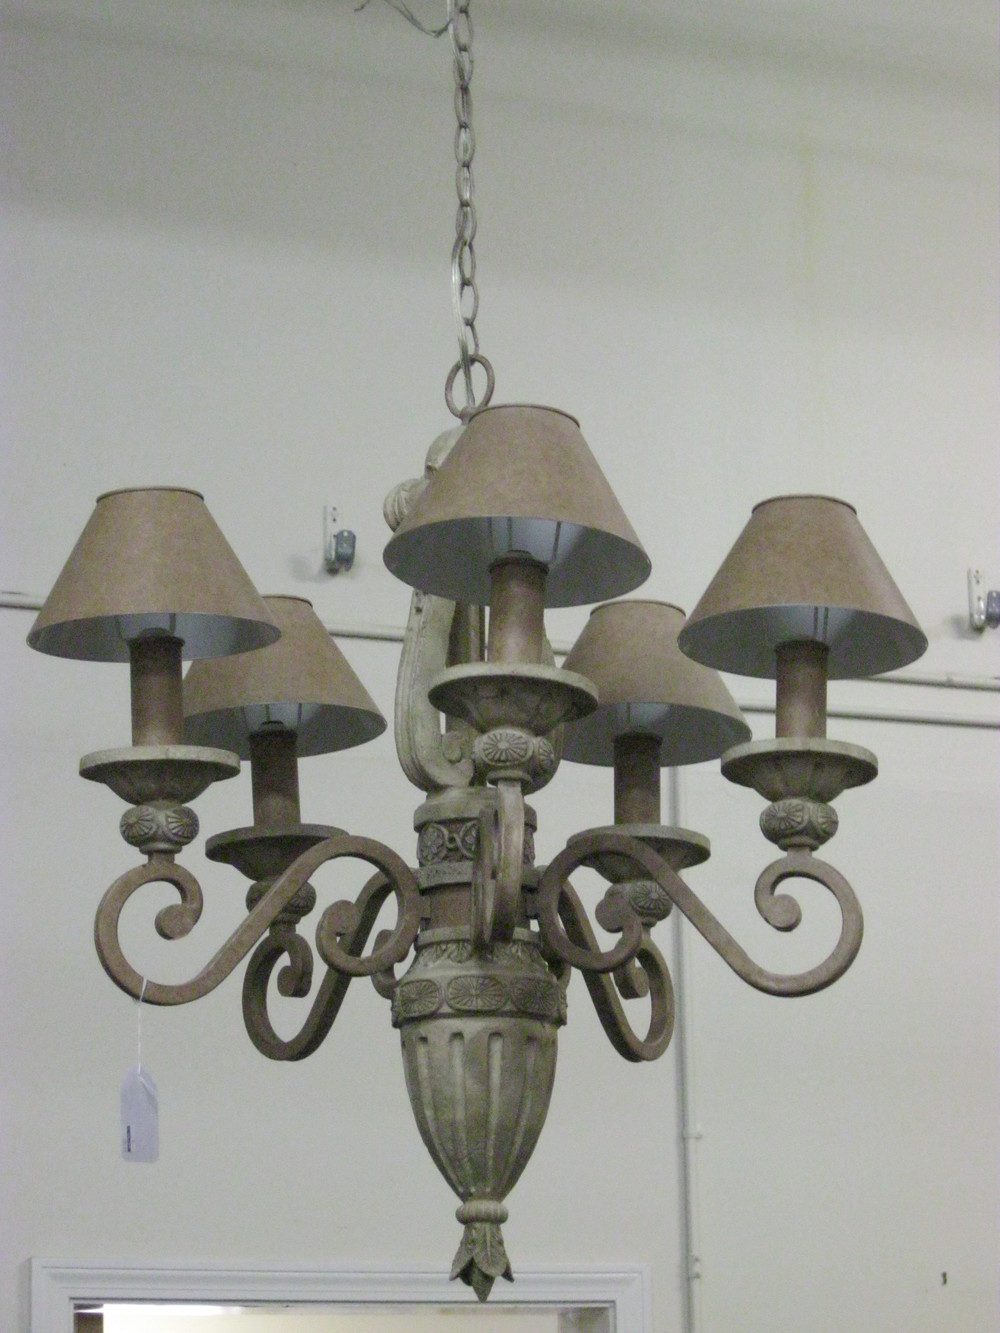 6-Lite Stone-like Chandelier